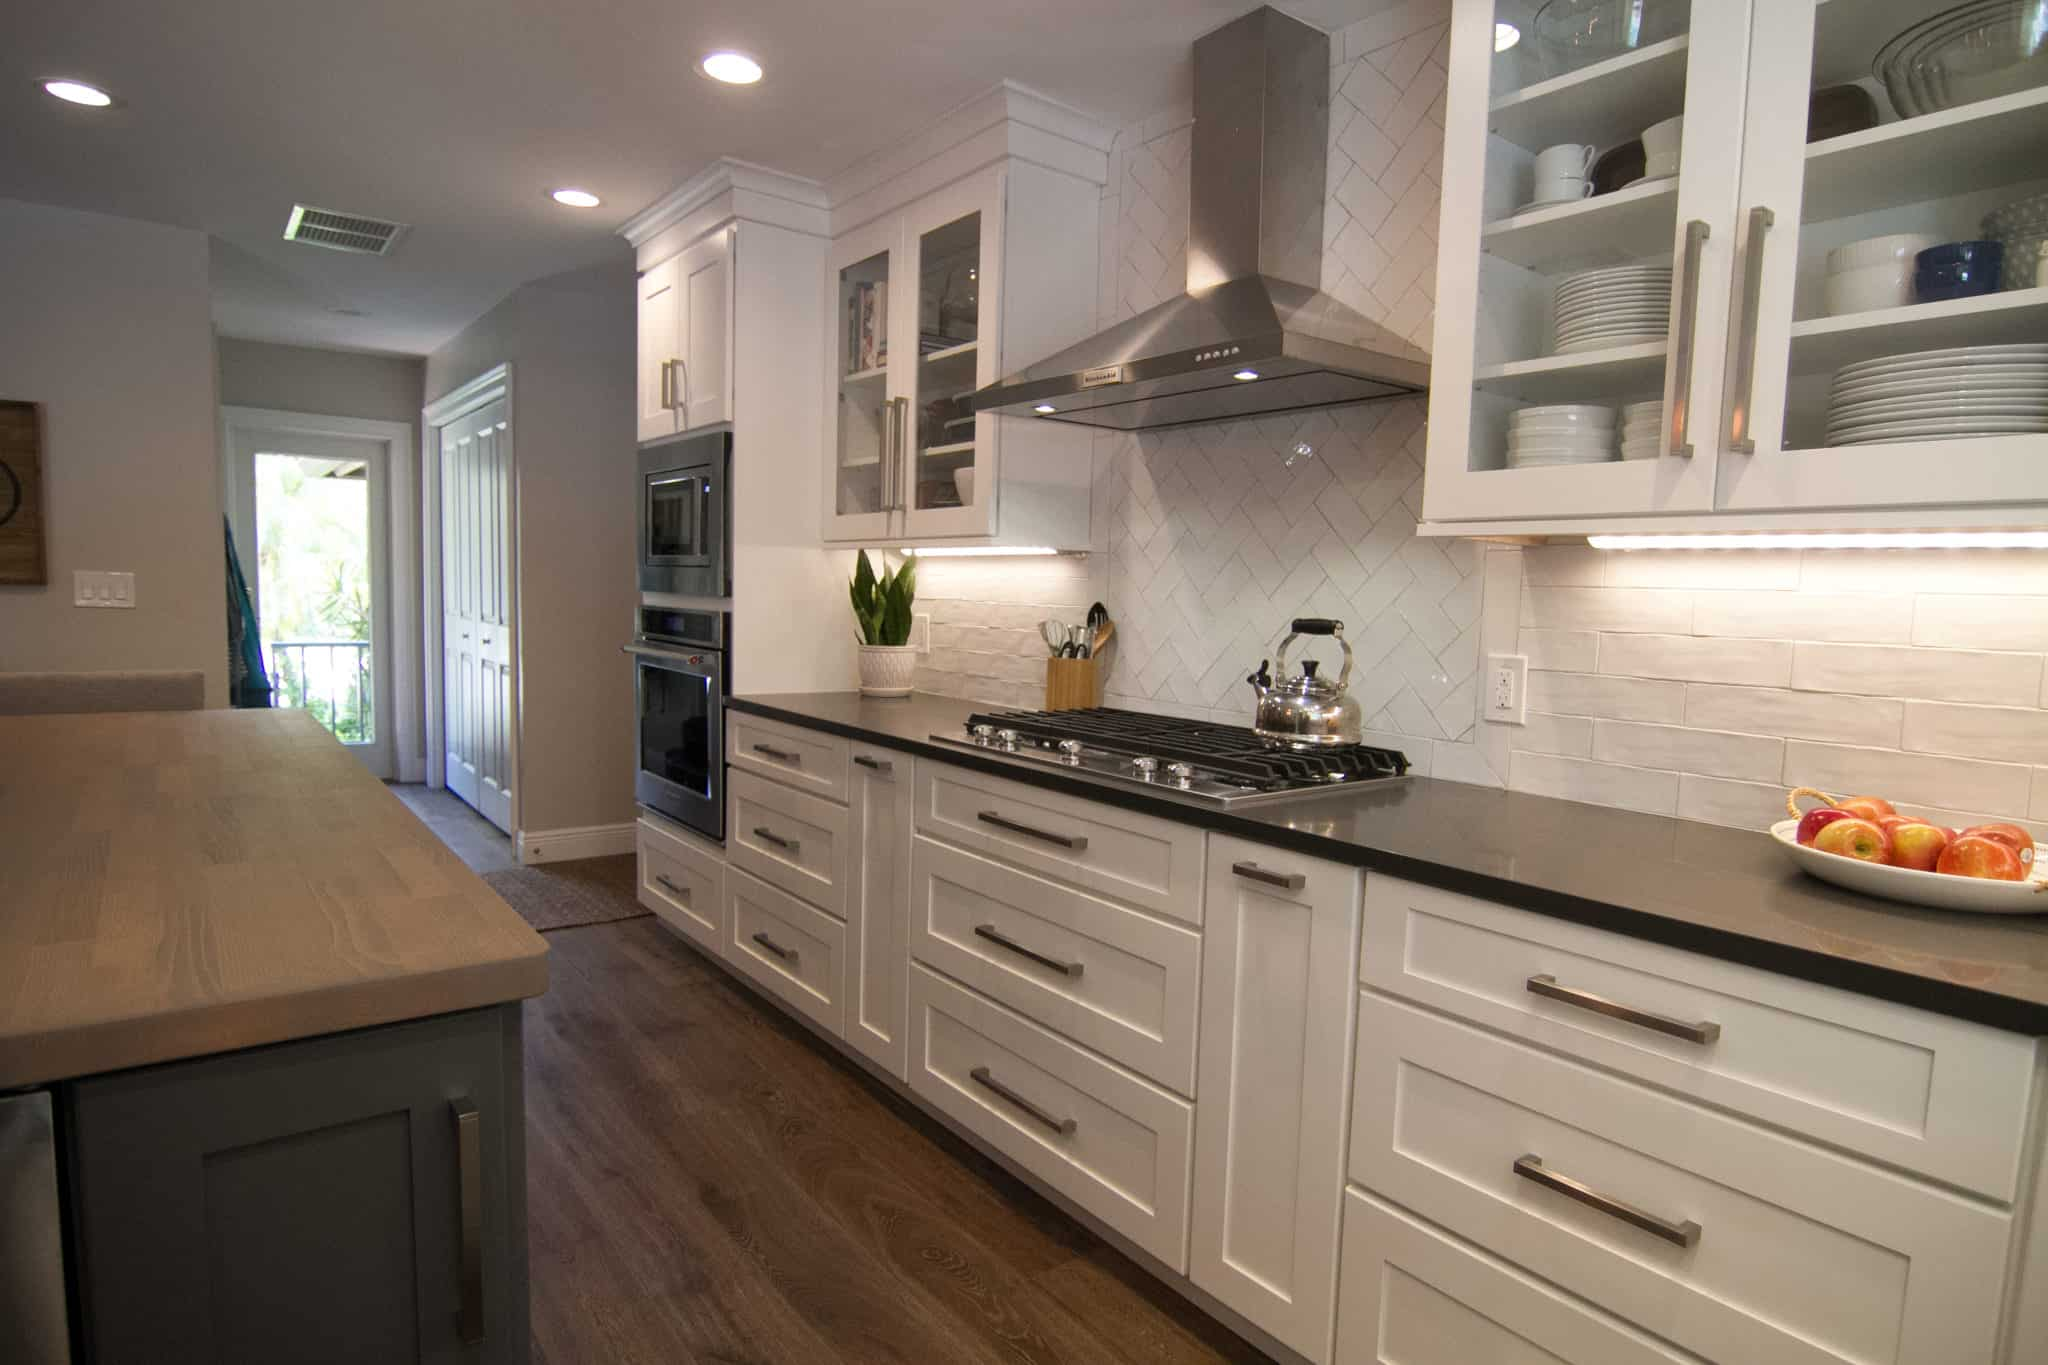 white cabinets with large stell hood